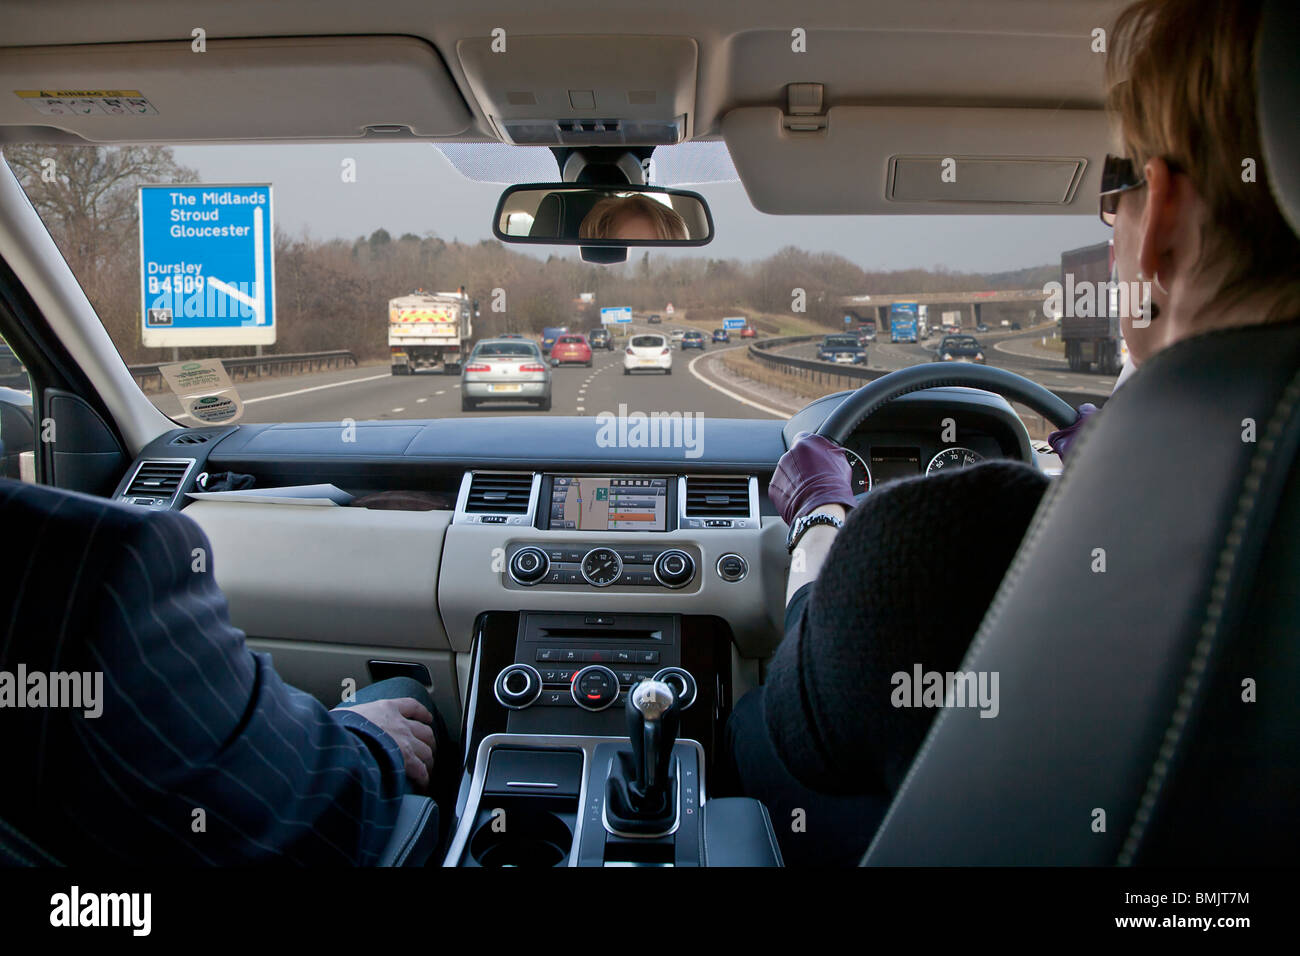 interior of range rover car being driven by woman on motorway in uk stock photo 29917656 alamy. Black Bedroom Furniture Sets. Home Design Ideas